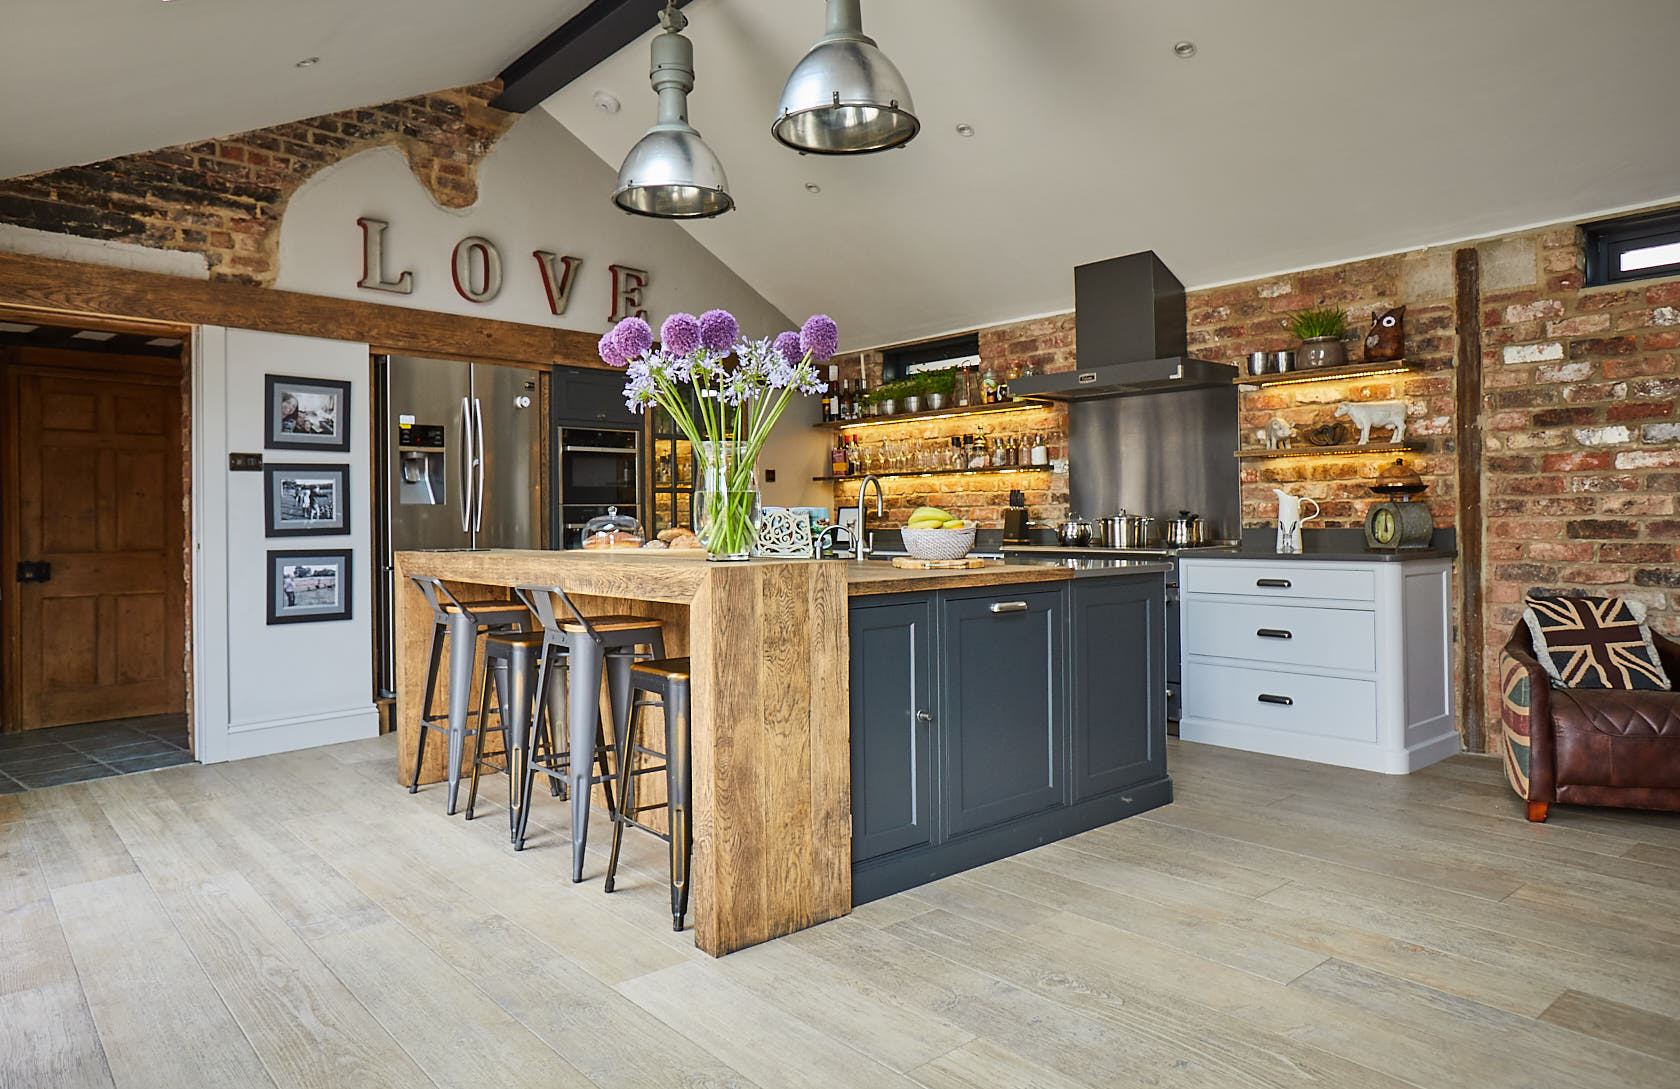 Vaulted room with bespoke industrial kitchen